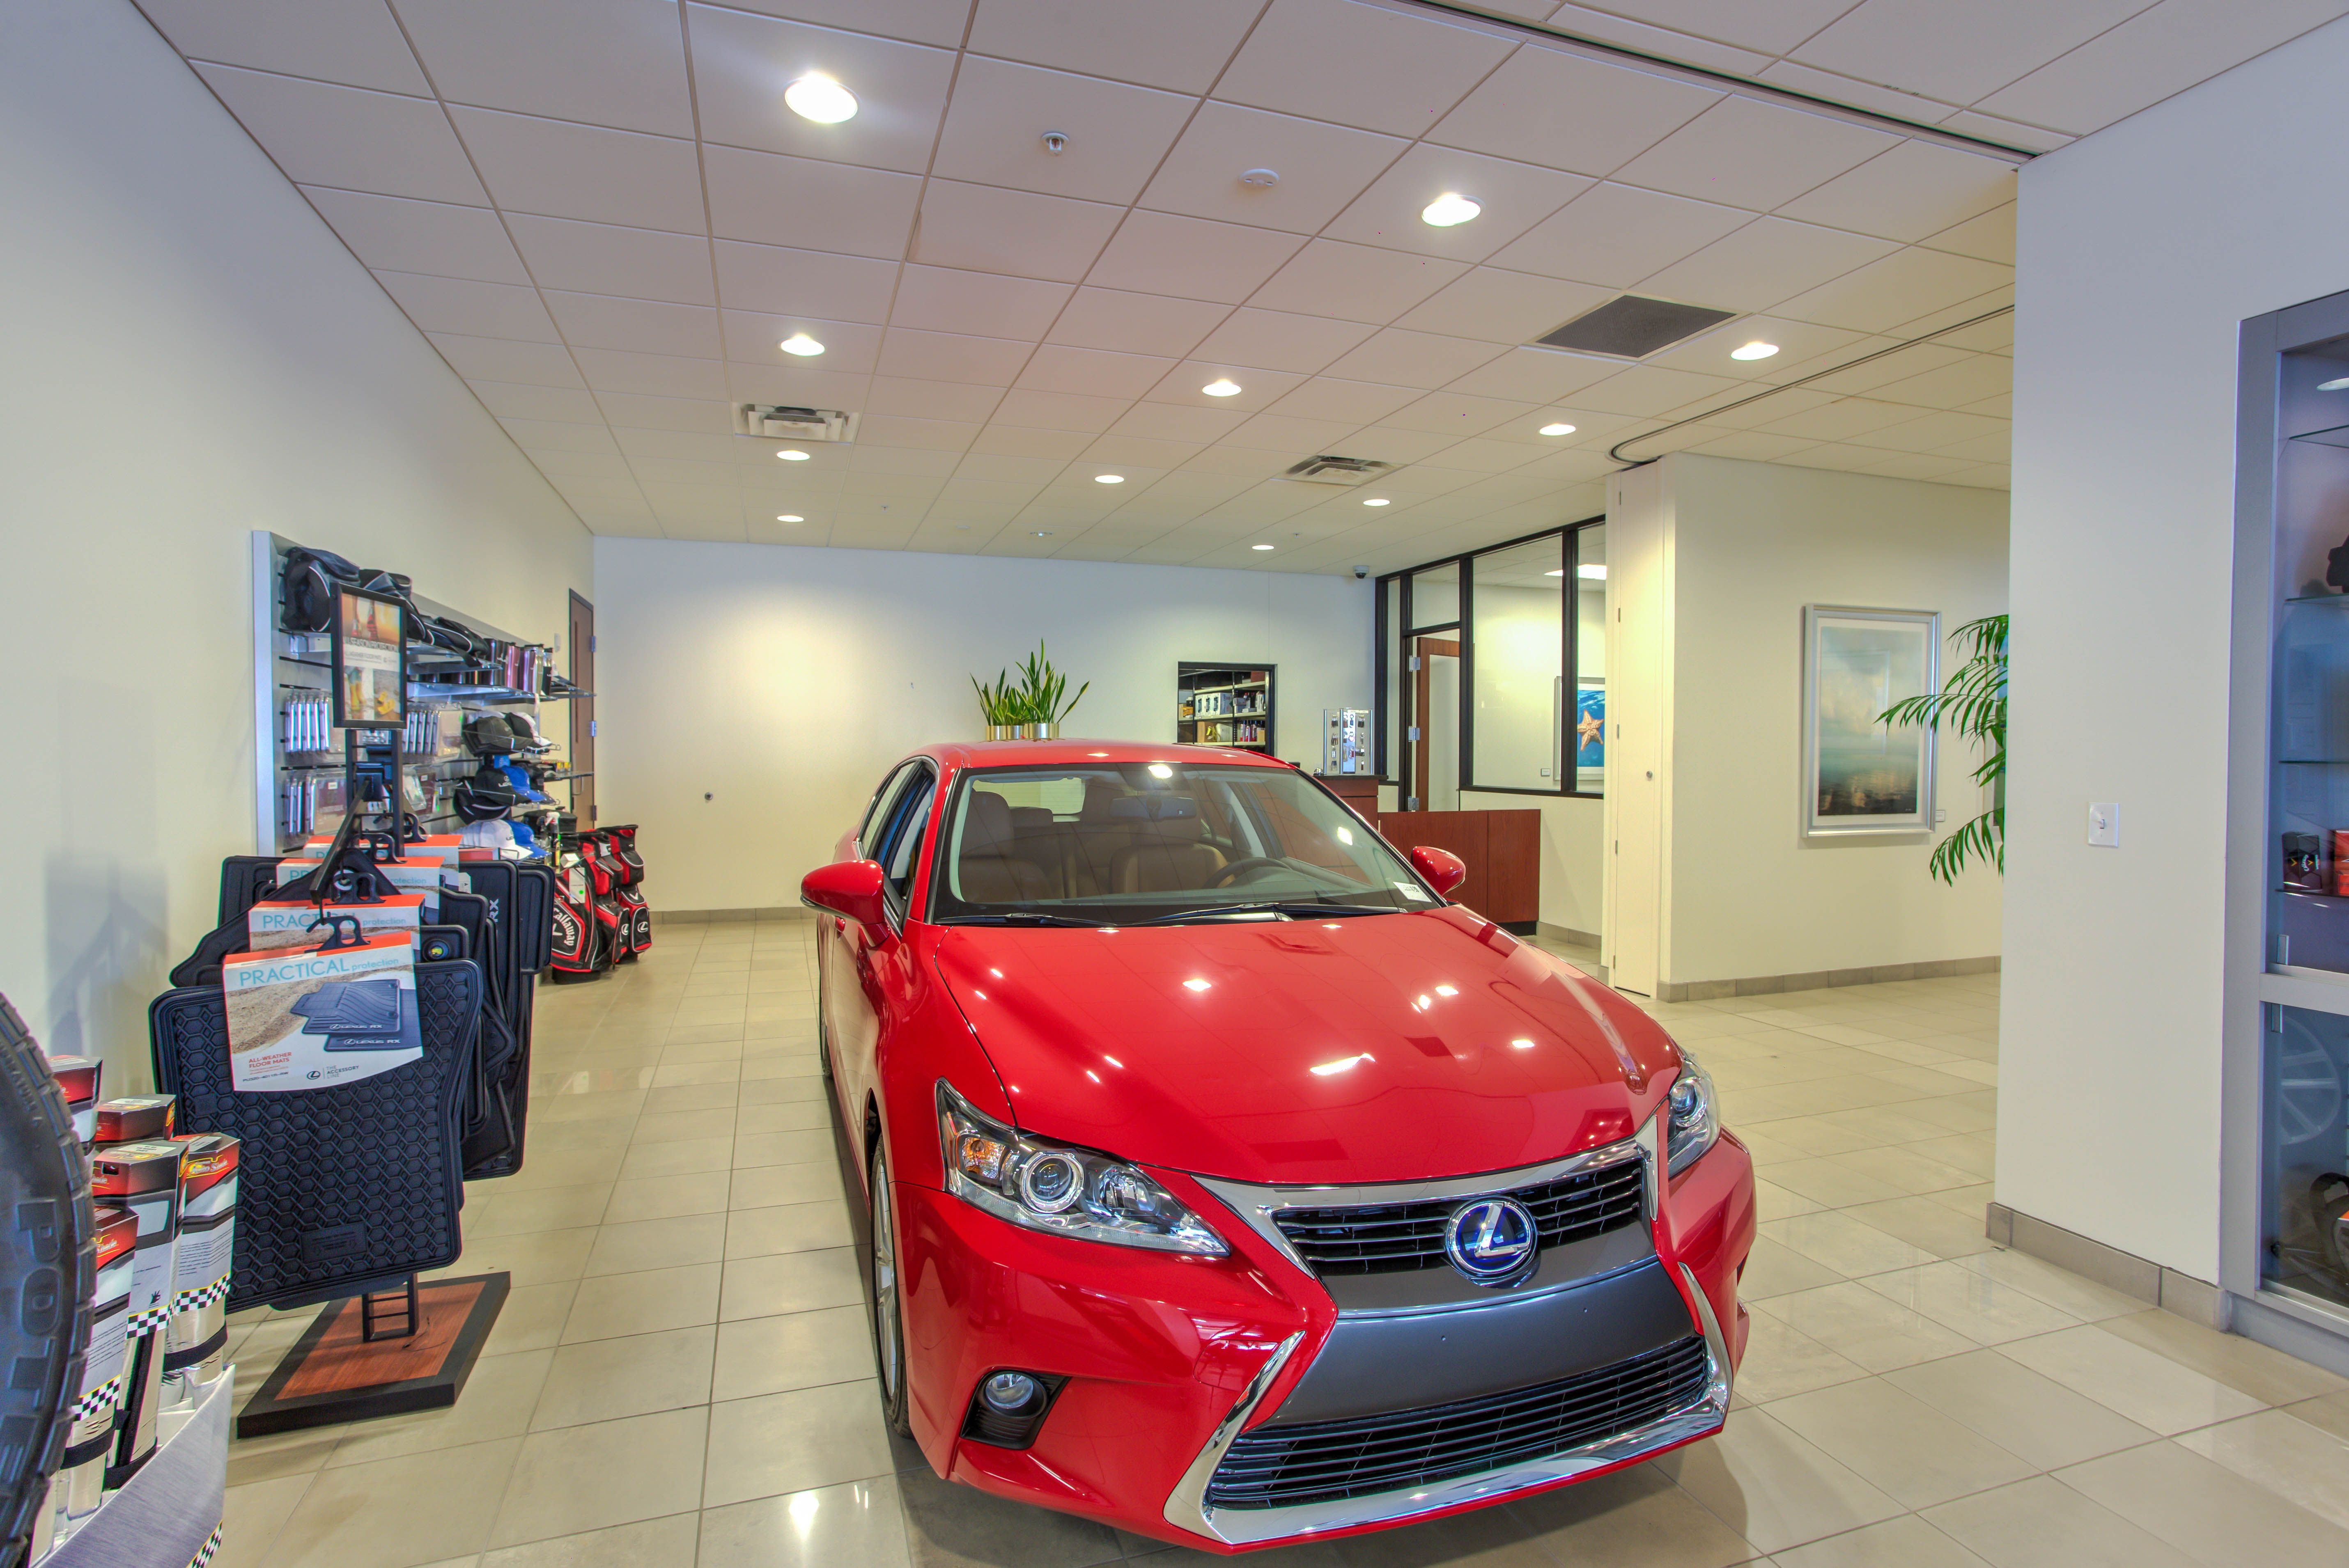 In The Market For A Great New Lexus Cars Including A Sedan Coupe Suv Or Hybrid Vehicle We Are The Lexus Dealership Jackso New Lexus Lexus Dealership Lexus